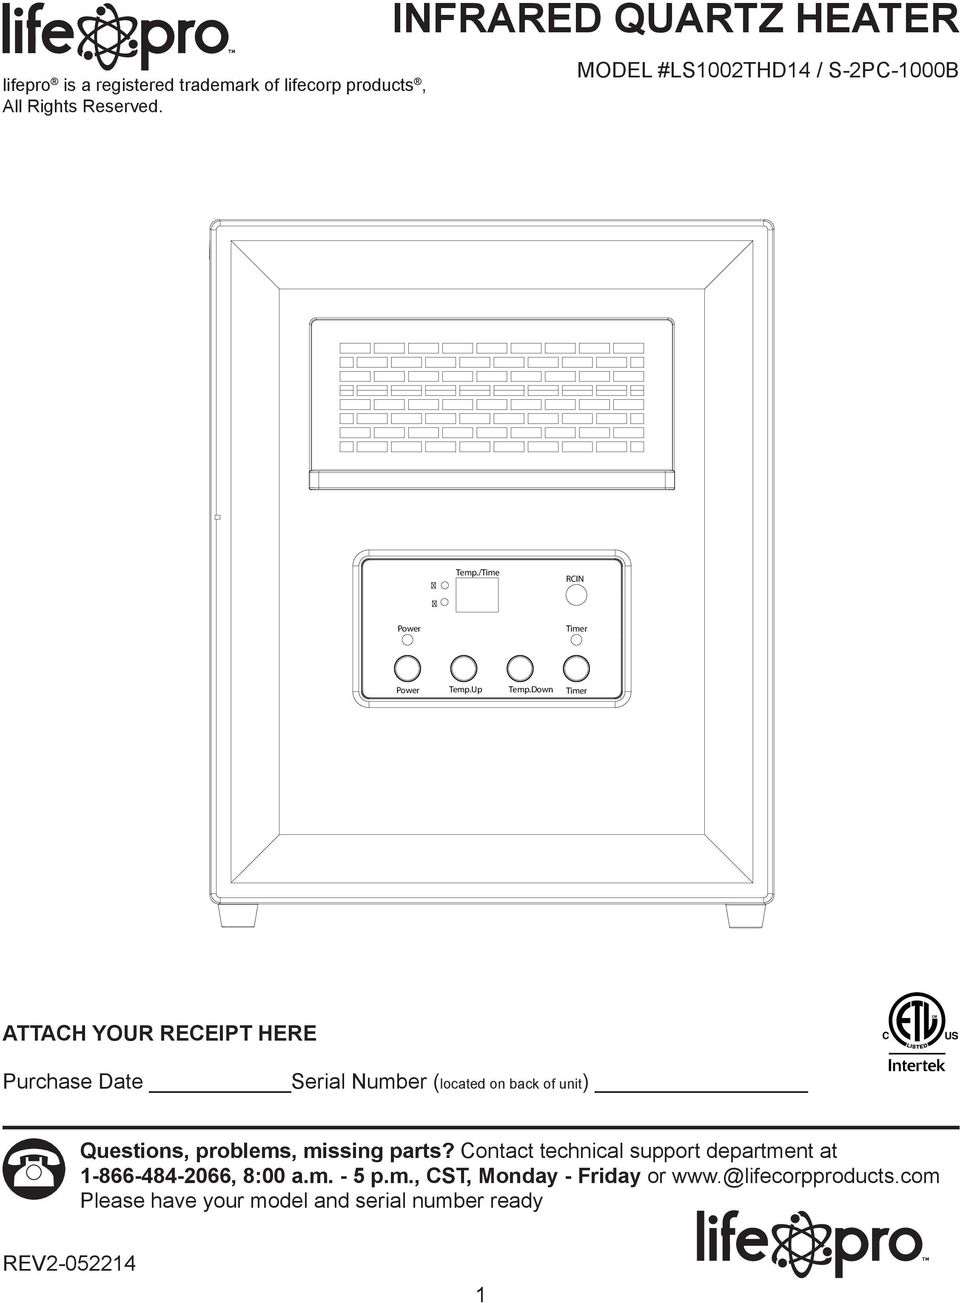 hight resolution of down timer attach your receipt here purchase date serial number located on back of unit